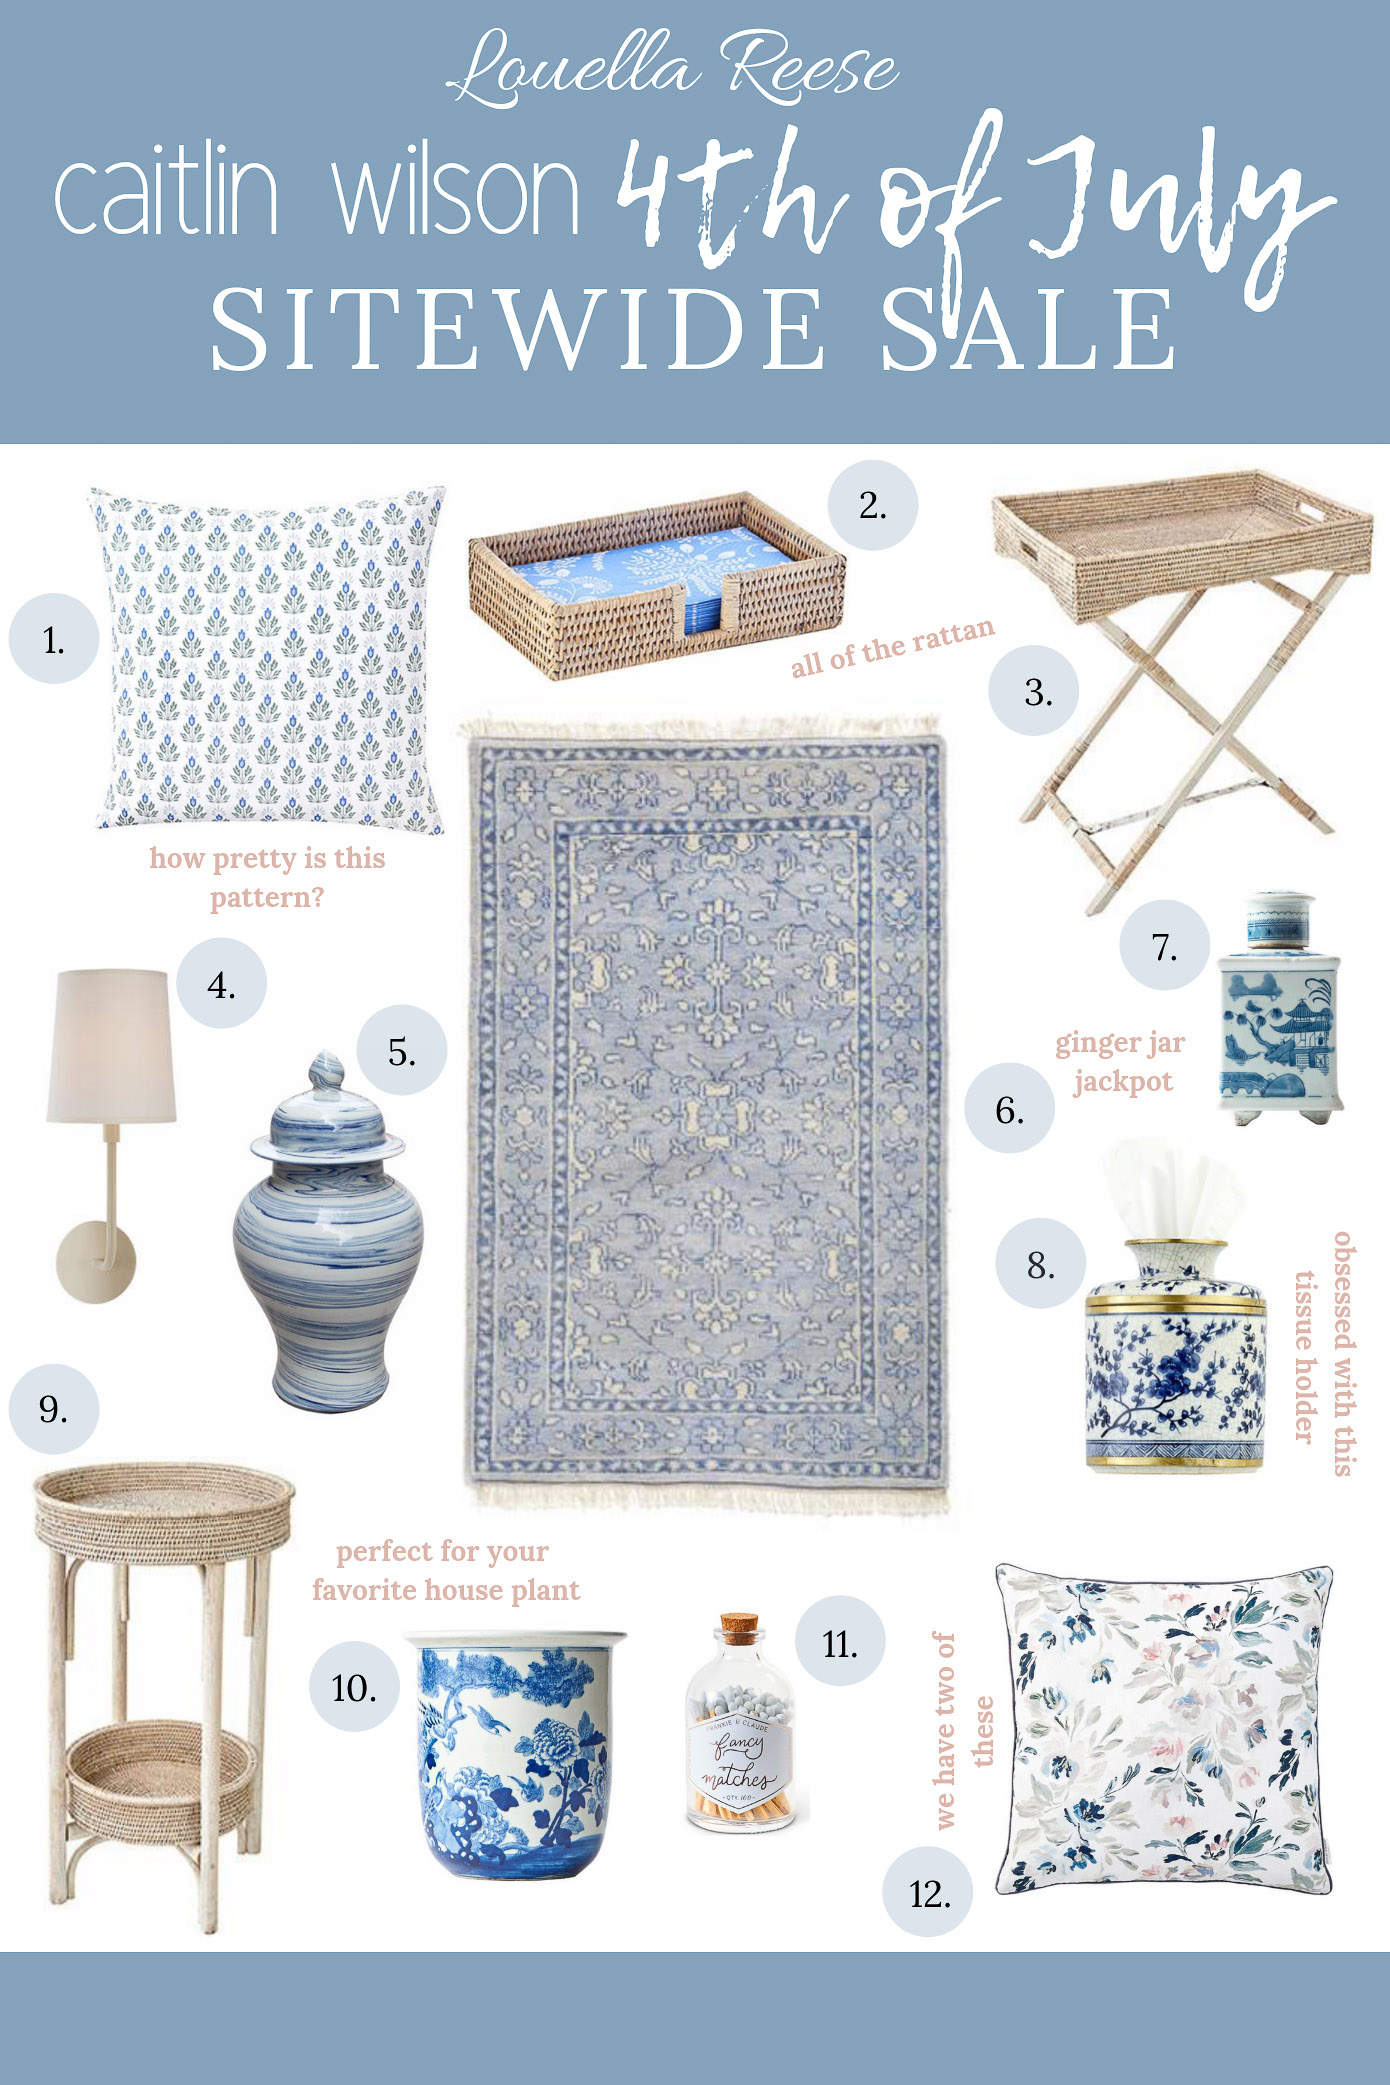 Fourth of July Home Sales to Shop | Caitlin Wilson Summer Sale | Blue and White Decor | Louella Reese